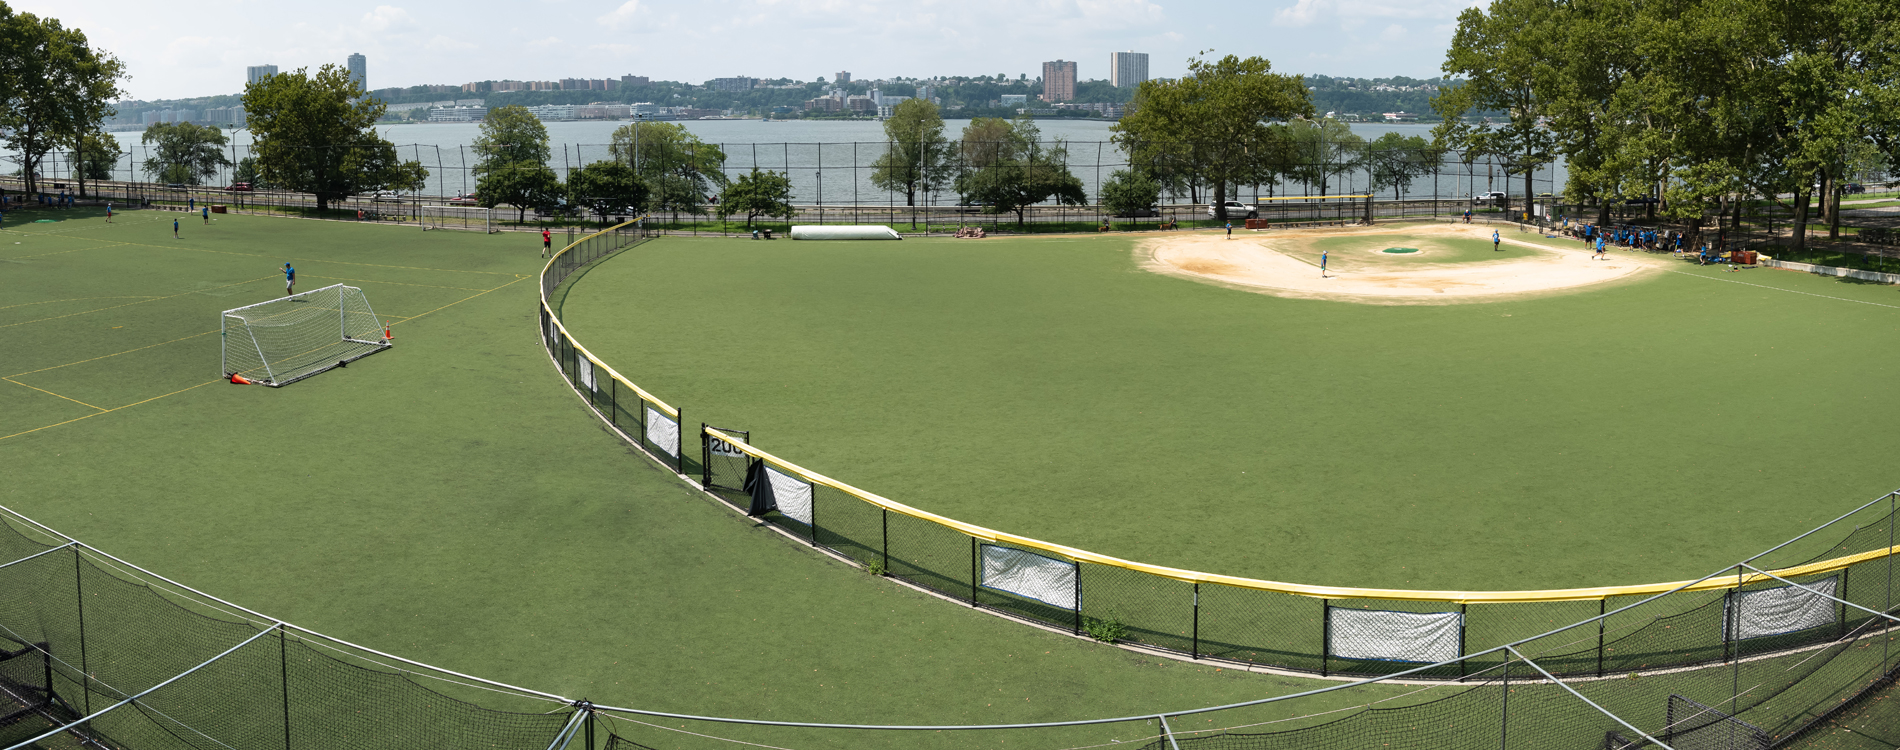 best summer camps nyc